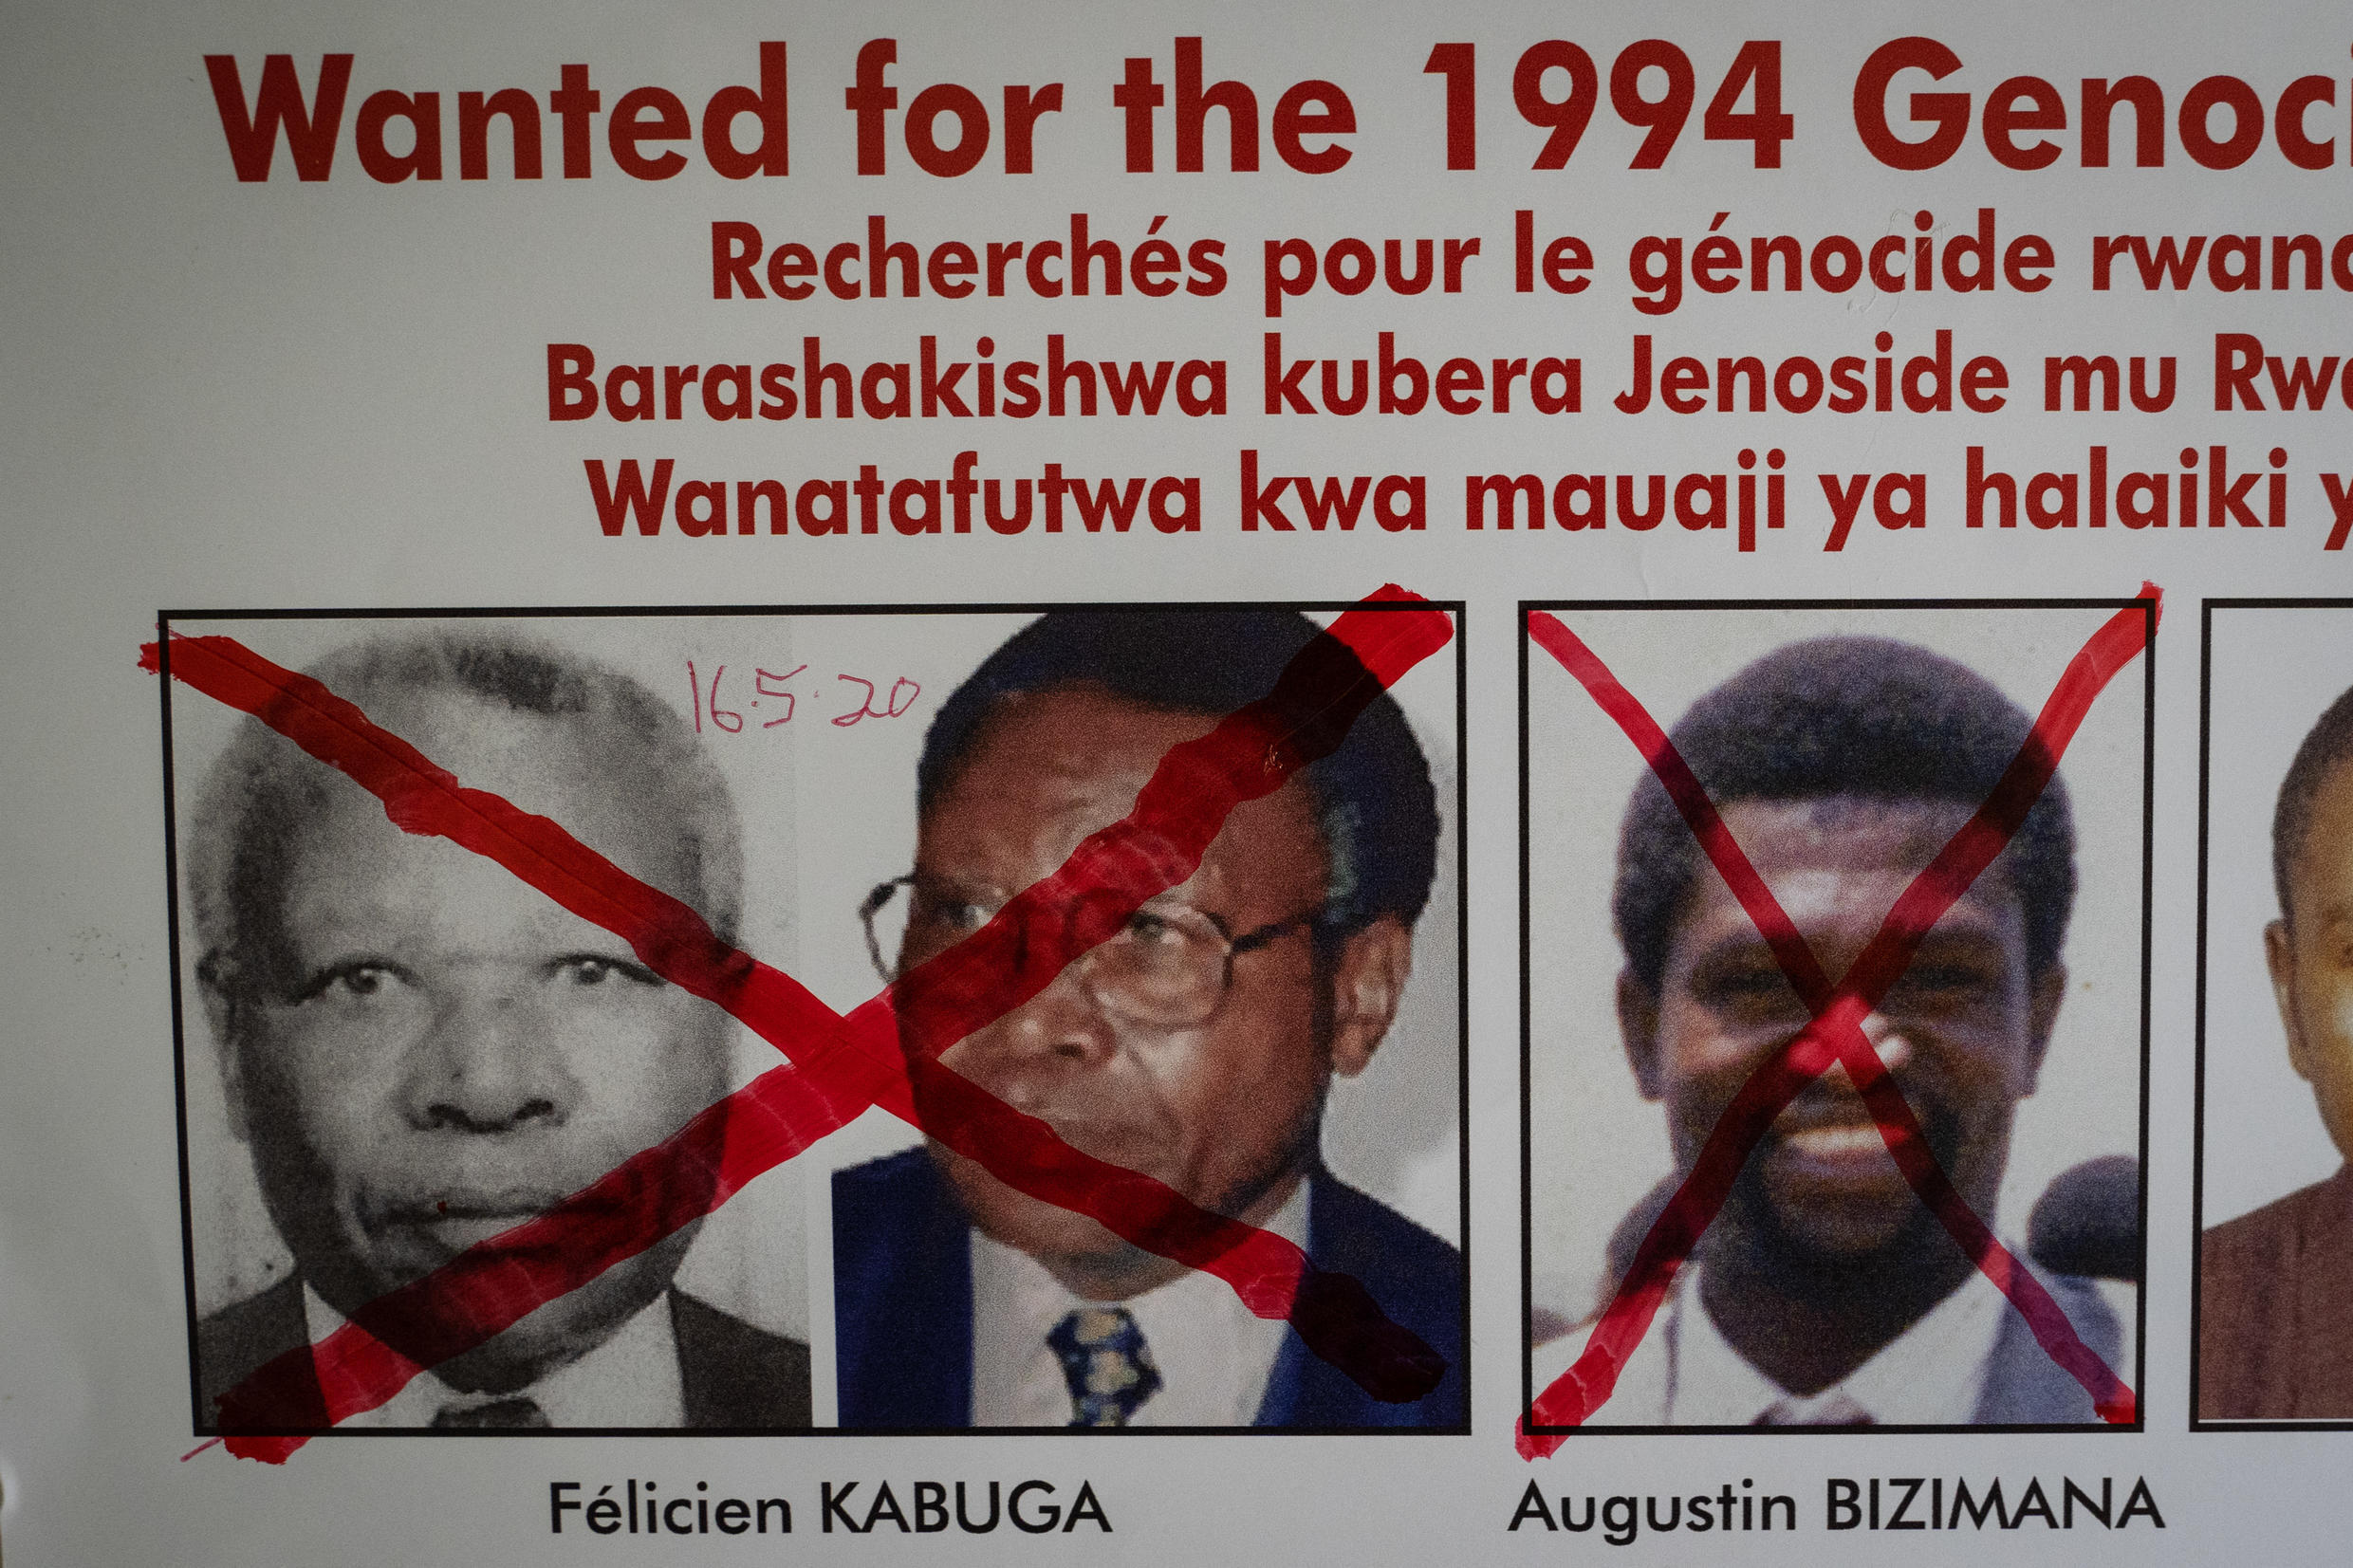 Actively wanted by international justice for twenty-five years, Félicien Kabuga, a Rwandan businessman considered to be the alleged financier of the 1994 genocide, was arrested on Saturday May 16 in the Paris region.